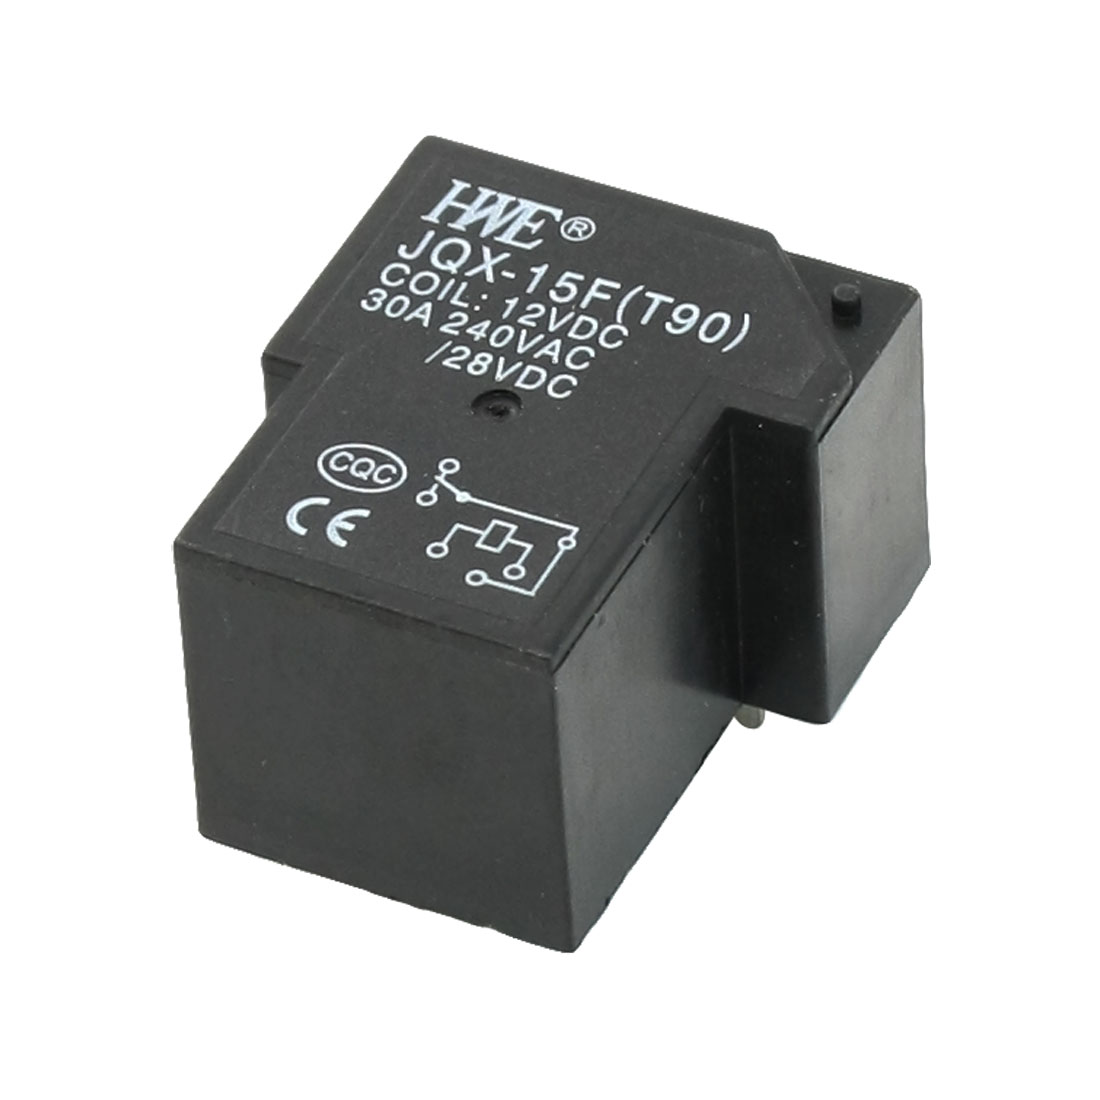 DC 12V Coil 30A AC 240V/28VDC Contact 6 Pin Miniature Relay